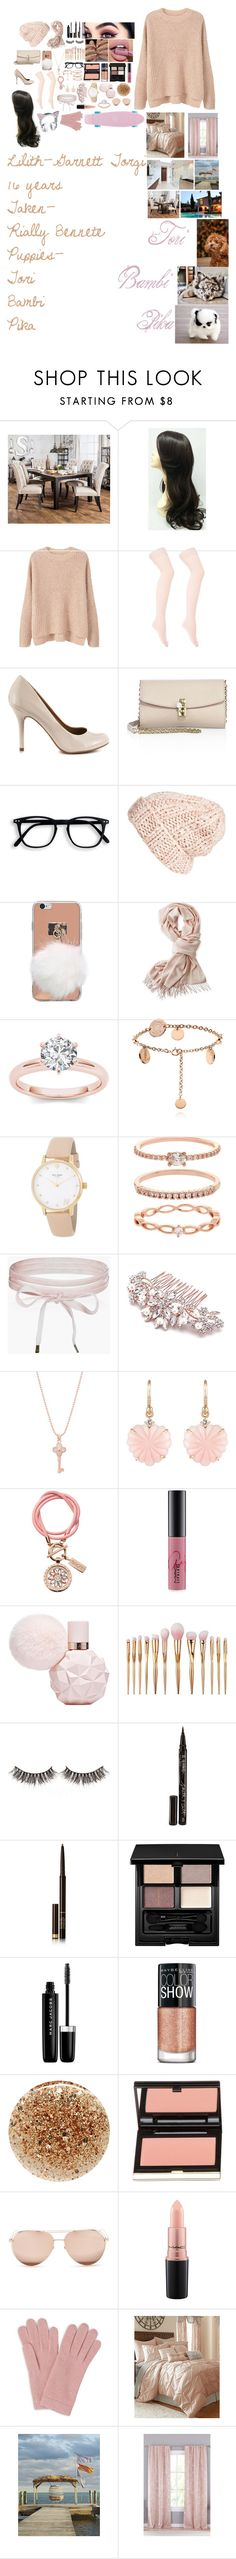 """Lilith-Garnett Torgi"" by nomrage ❤ liked on Polyvore featuring beauty, Furniture of America, MANGO, Charlotte Russe, Chinese Laundry, Dolce&Gabbana, Free People, Mark & Graham, Kate Spade and Accessorize"